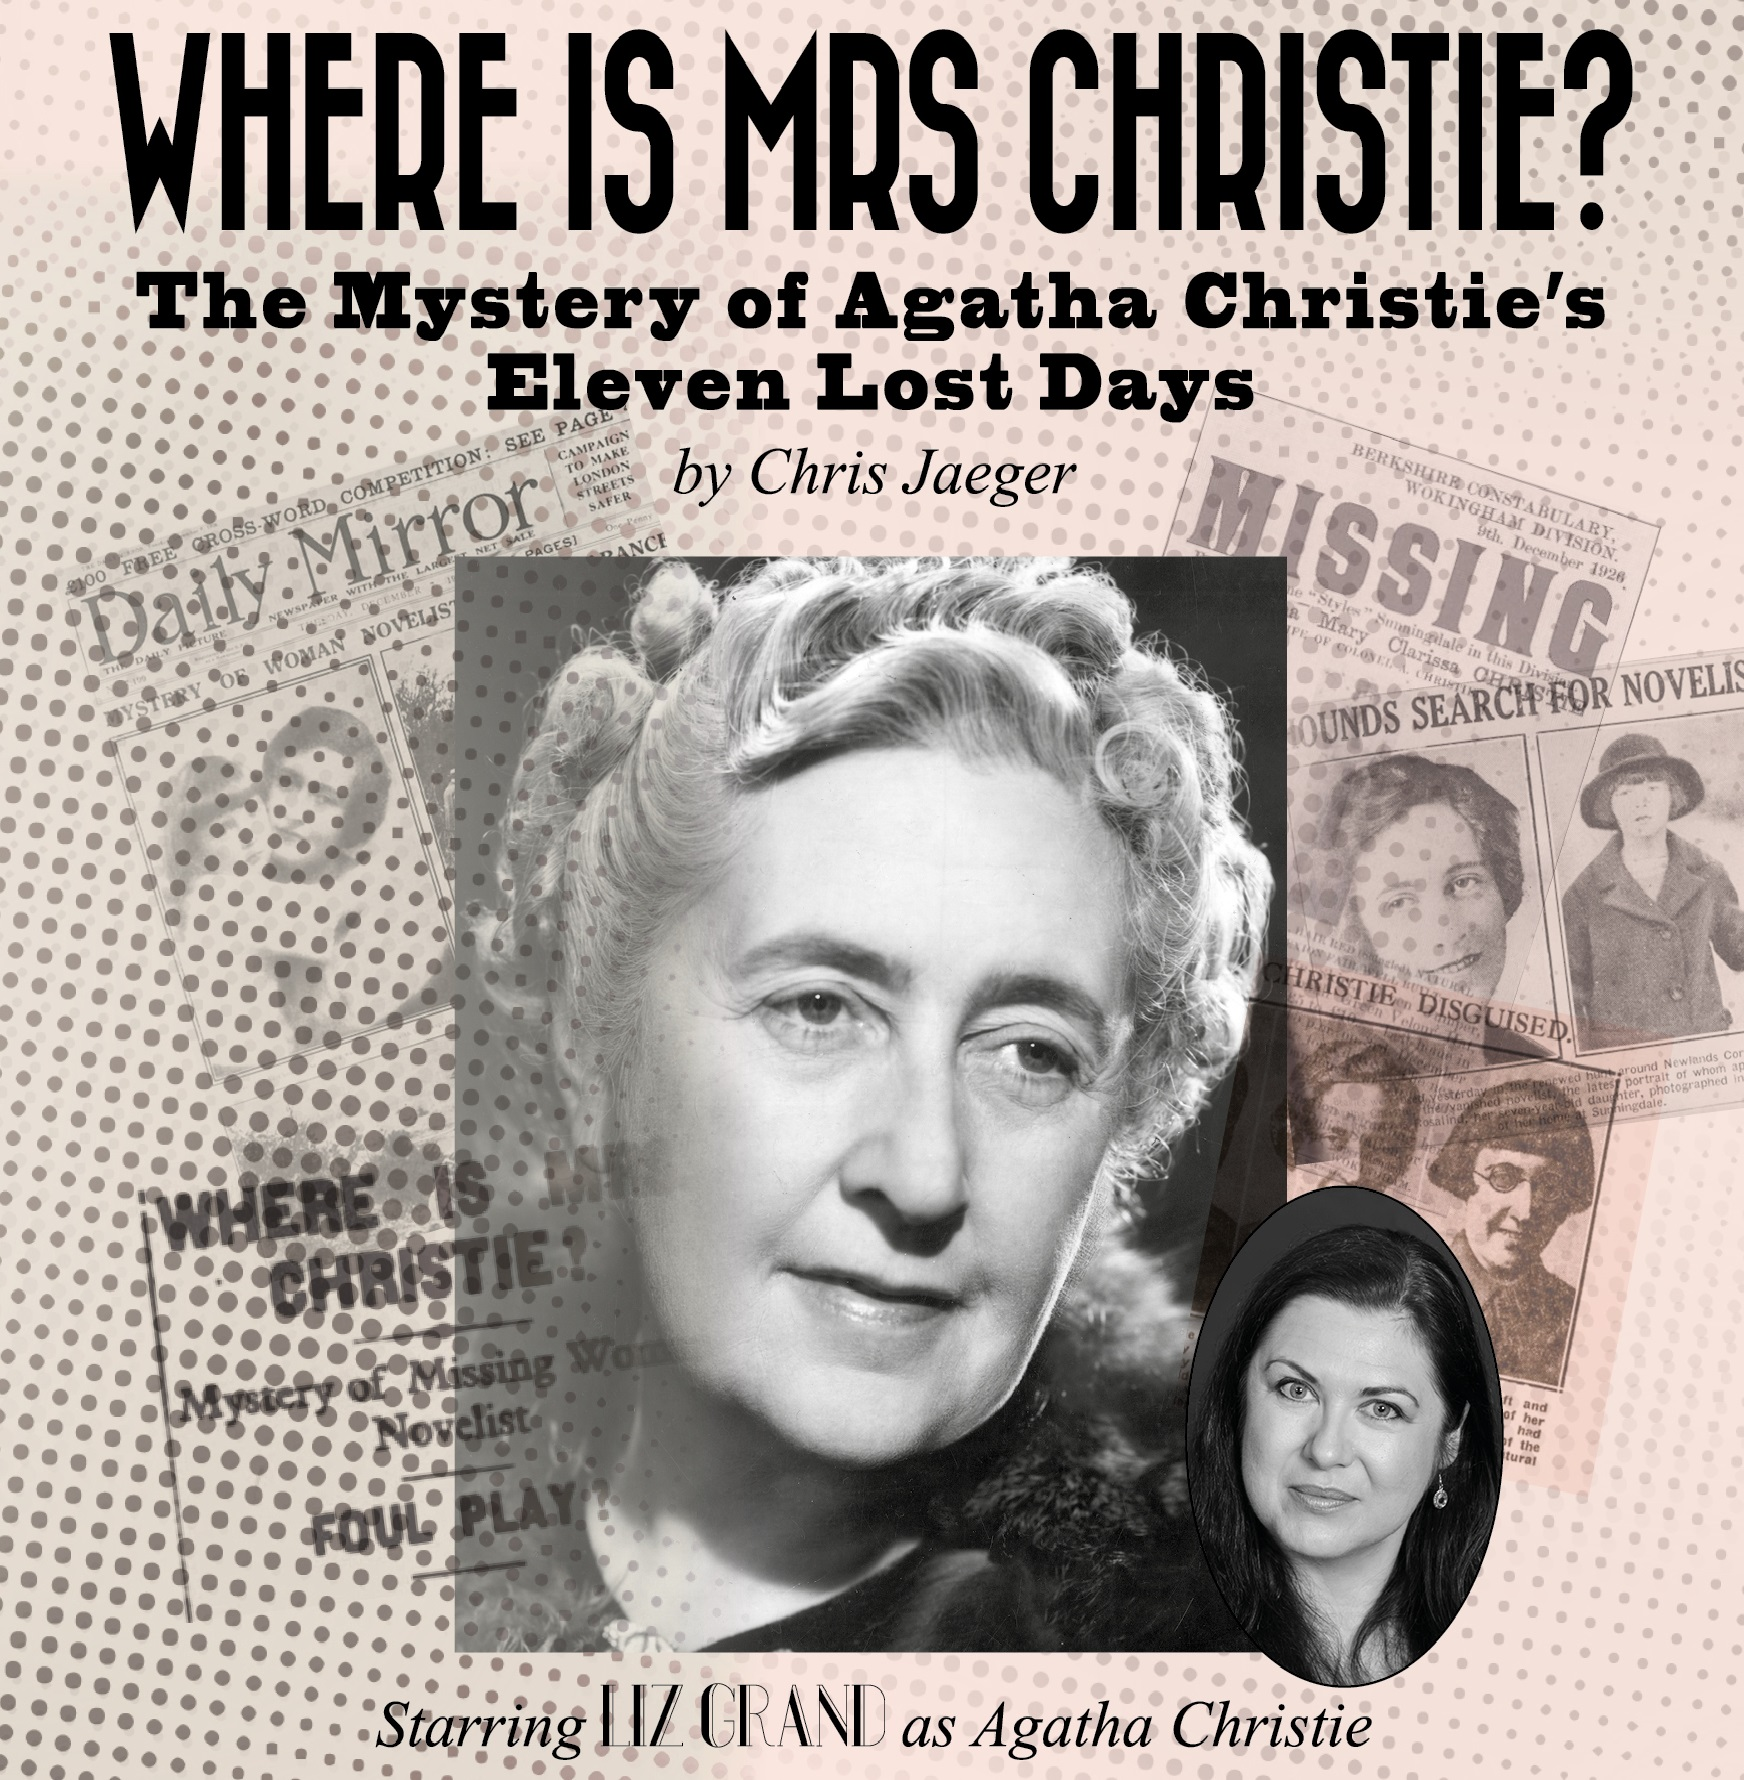 Where Is Mrs Christie